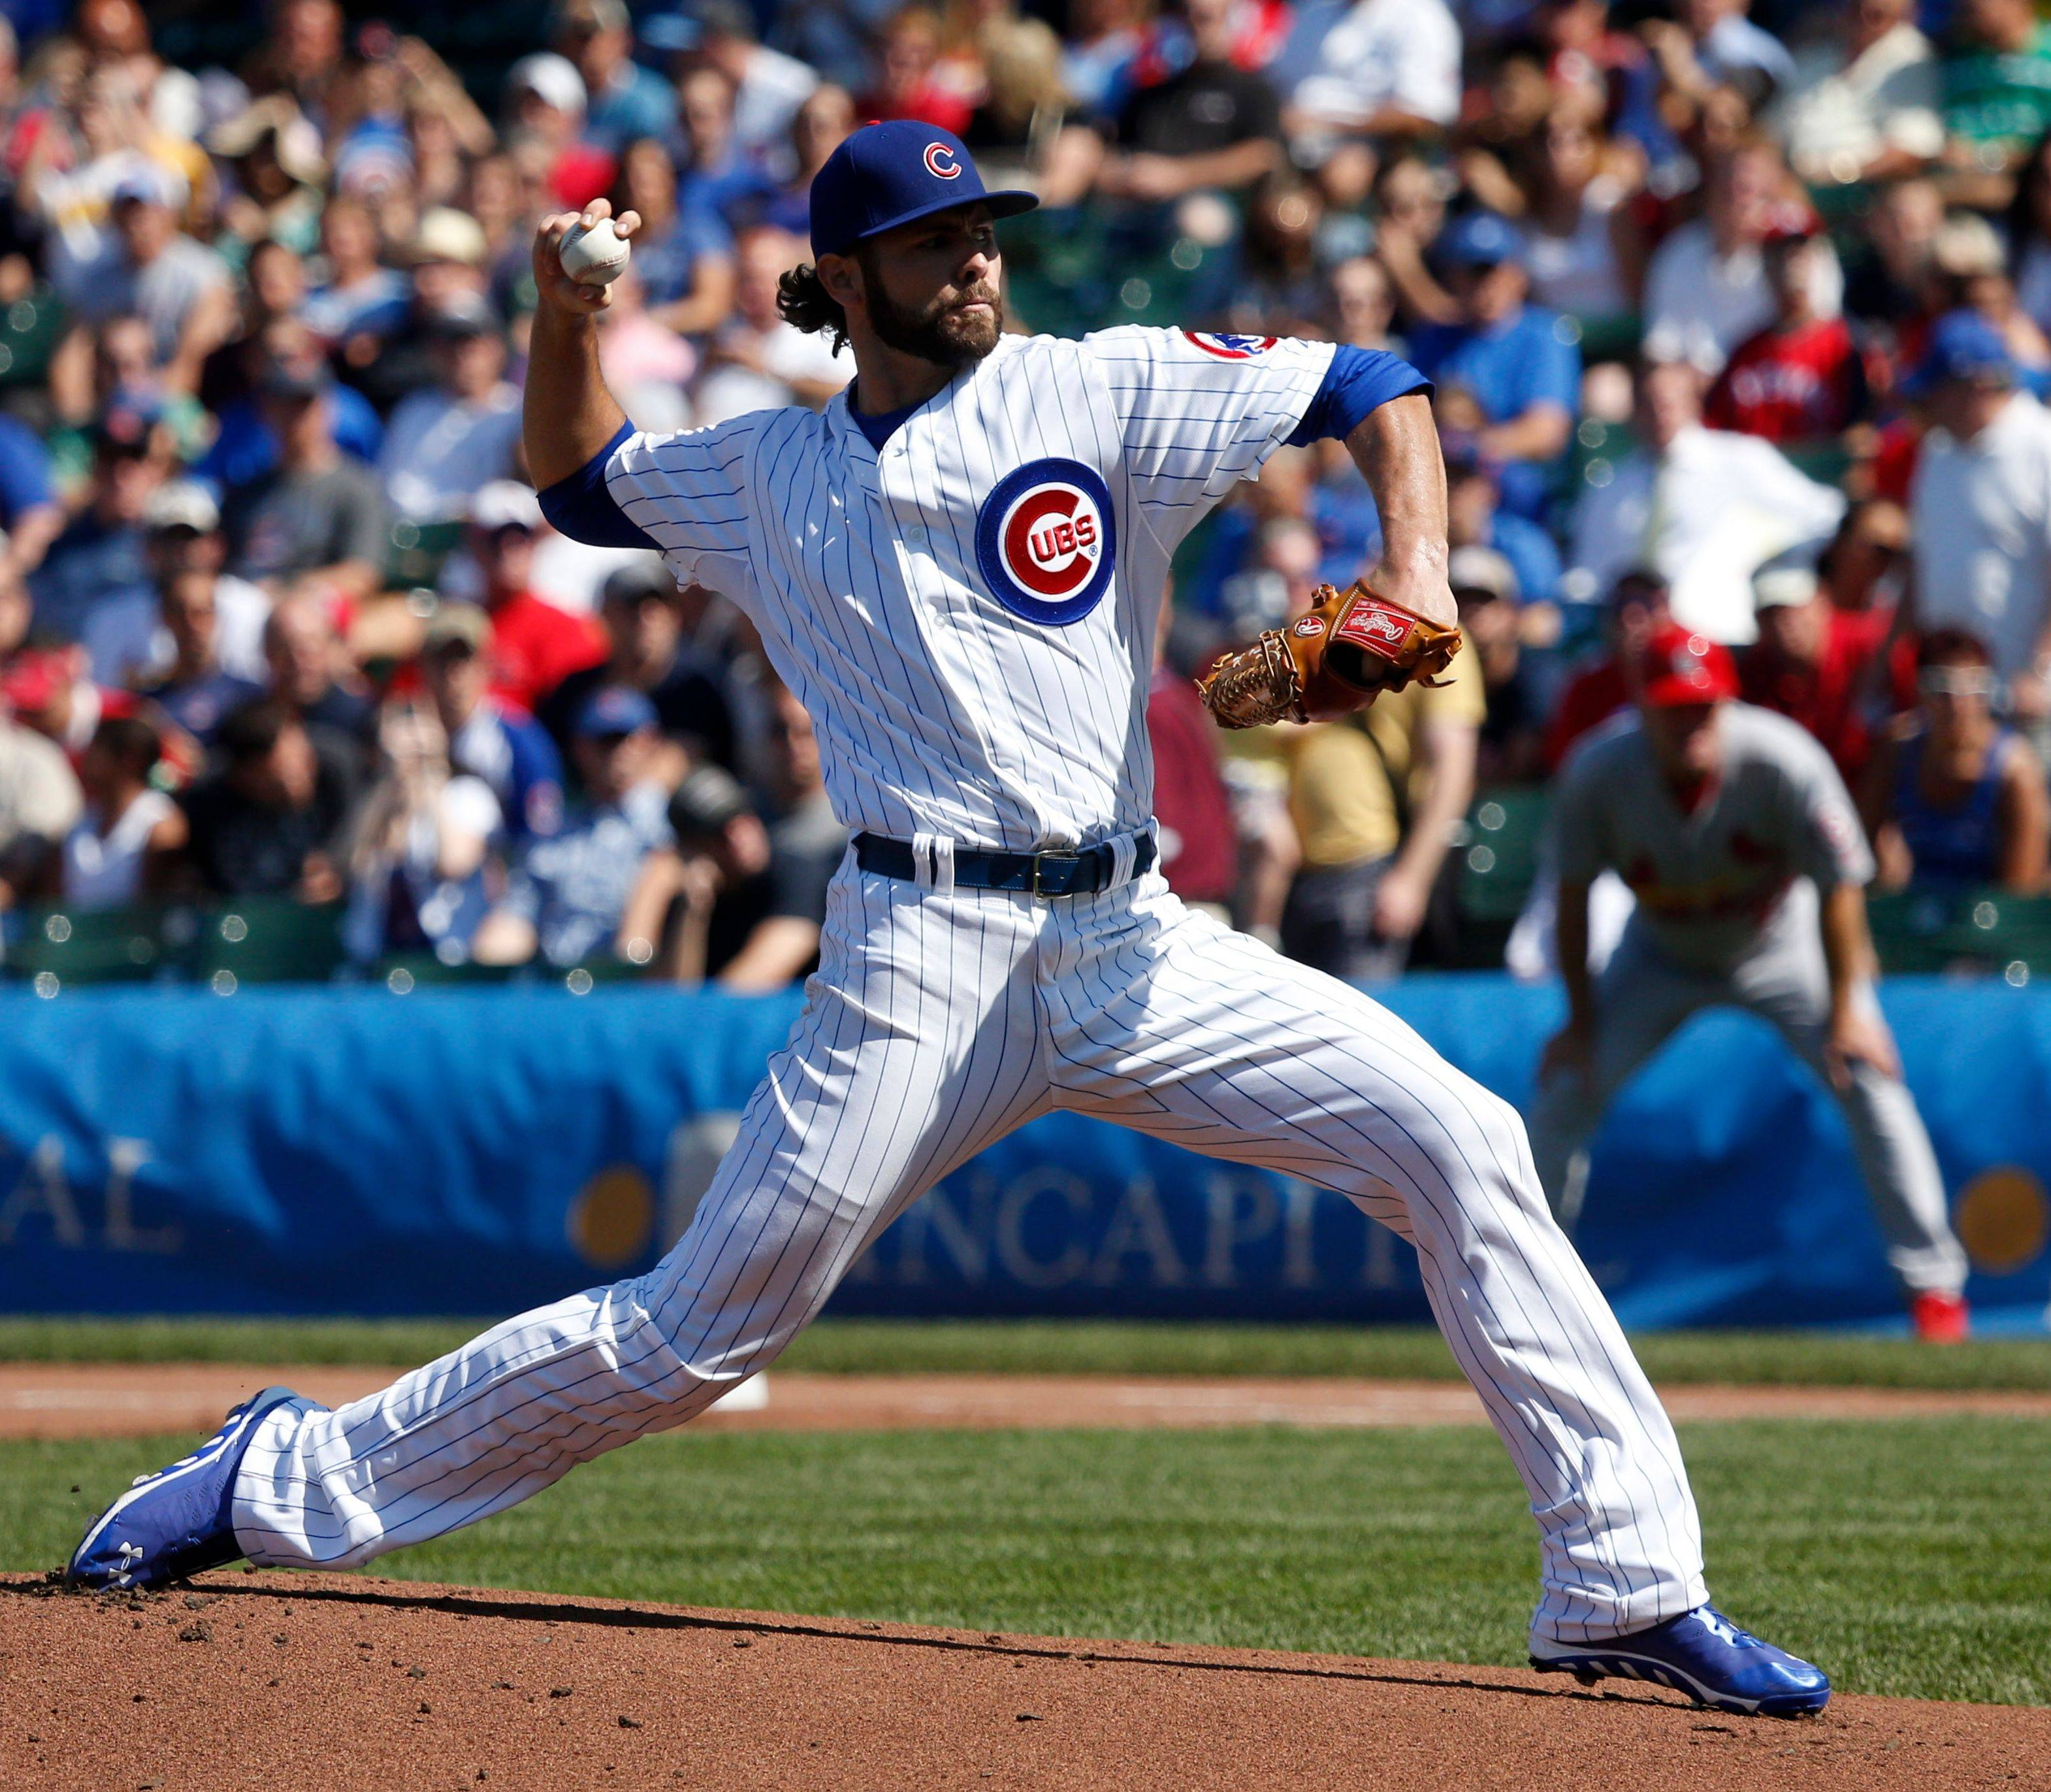 Mixing in curveballs, sliders and off-speed pitches that all top 90 miles per hour, Cubs righty Jake Arrieta threw 7 shutout innings Friday against the Cardinals.